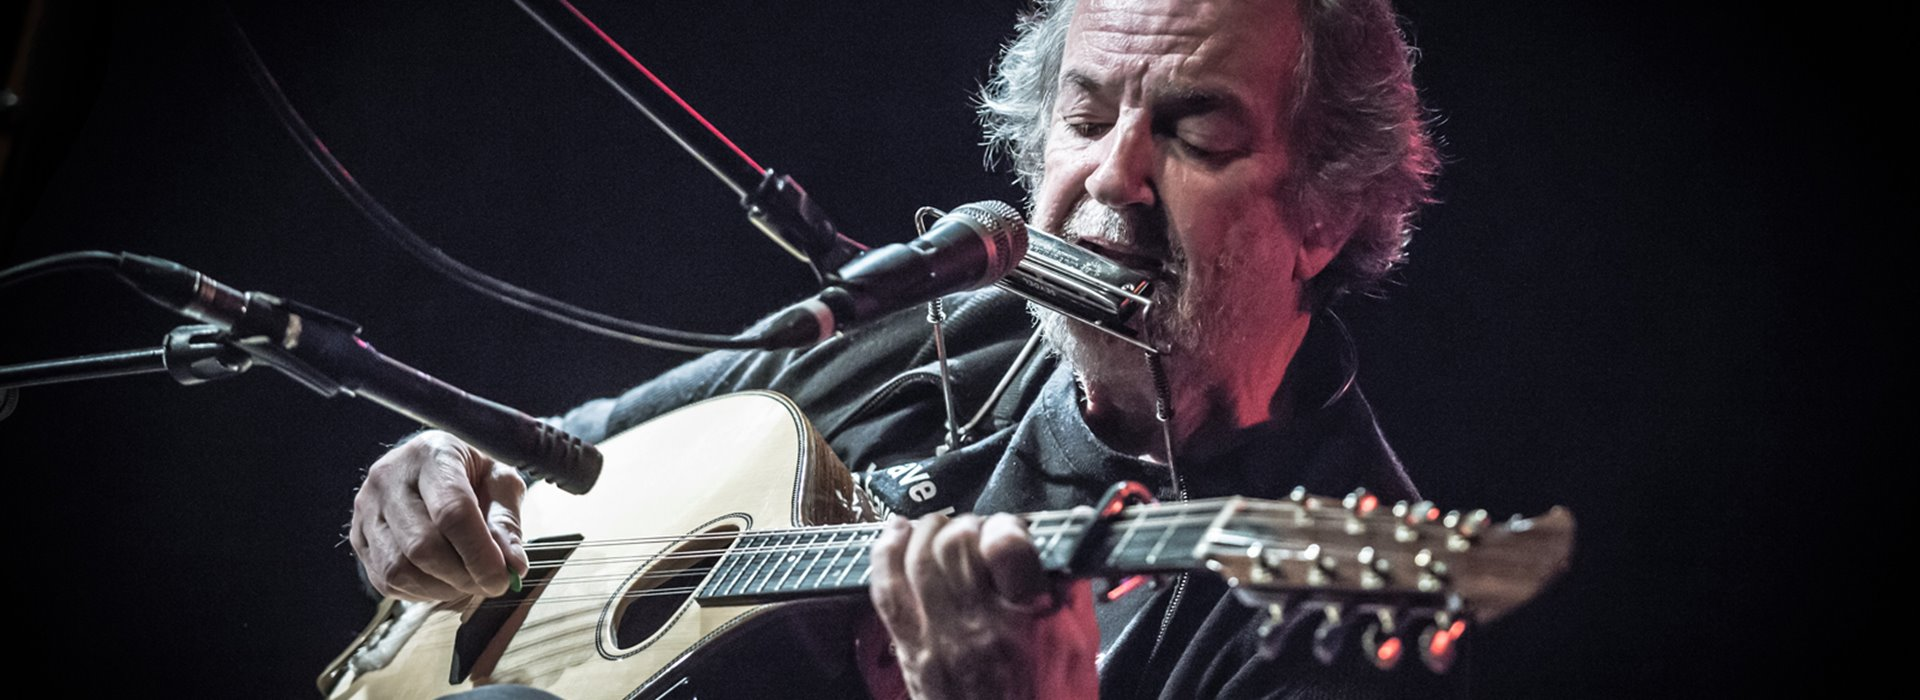 Buzz Buzz Buzz presents Andy Irvine